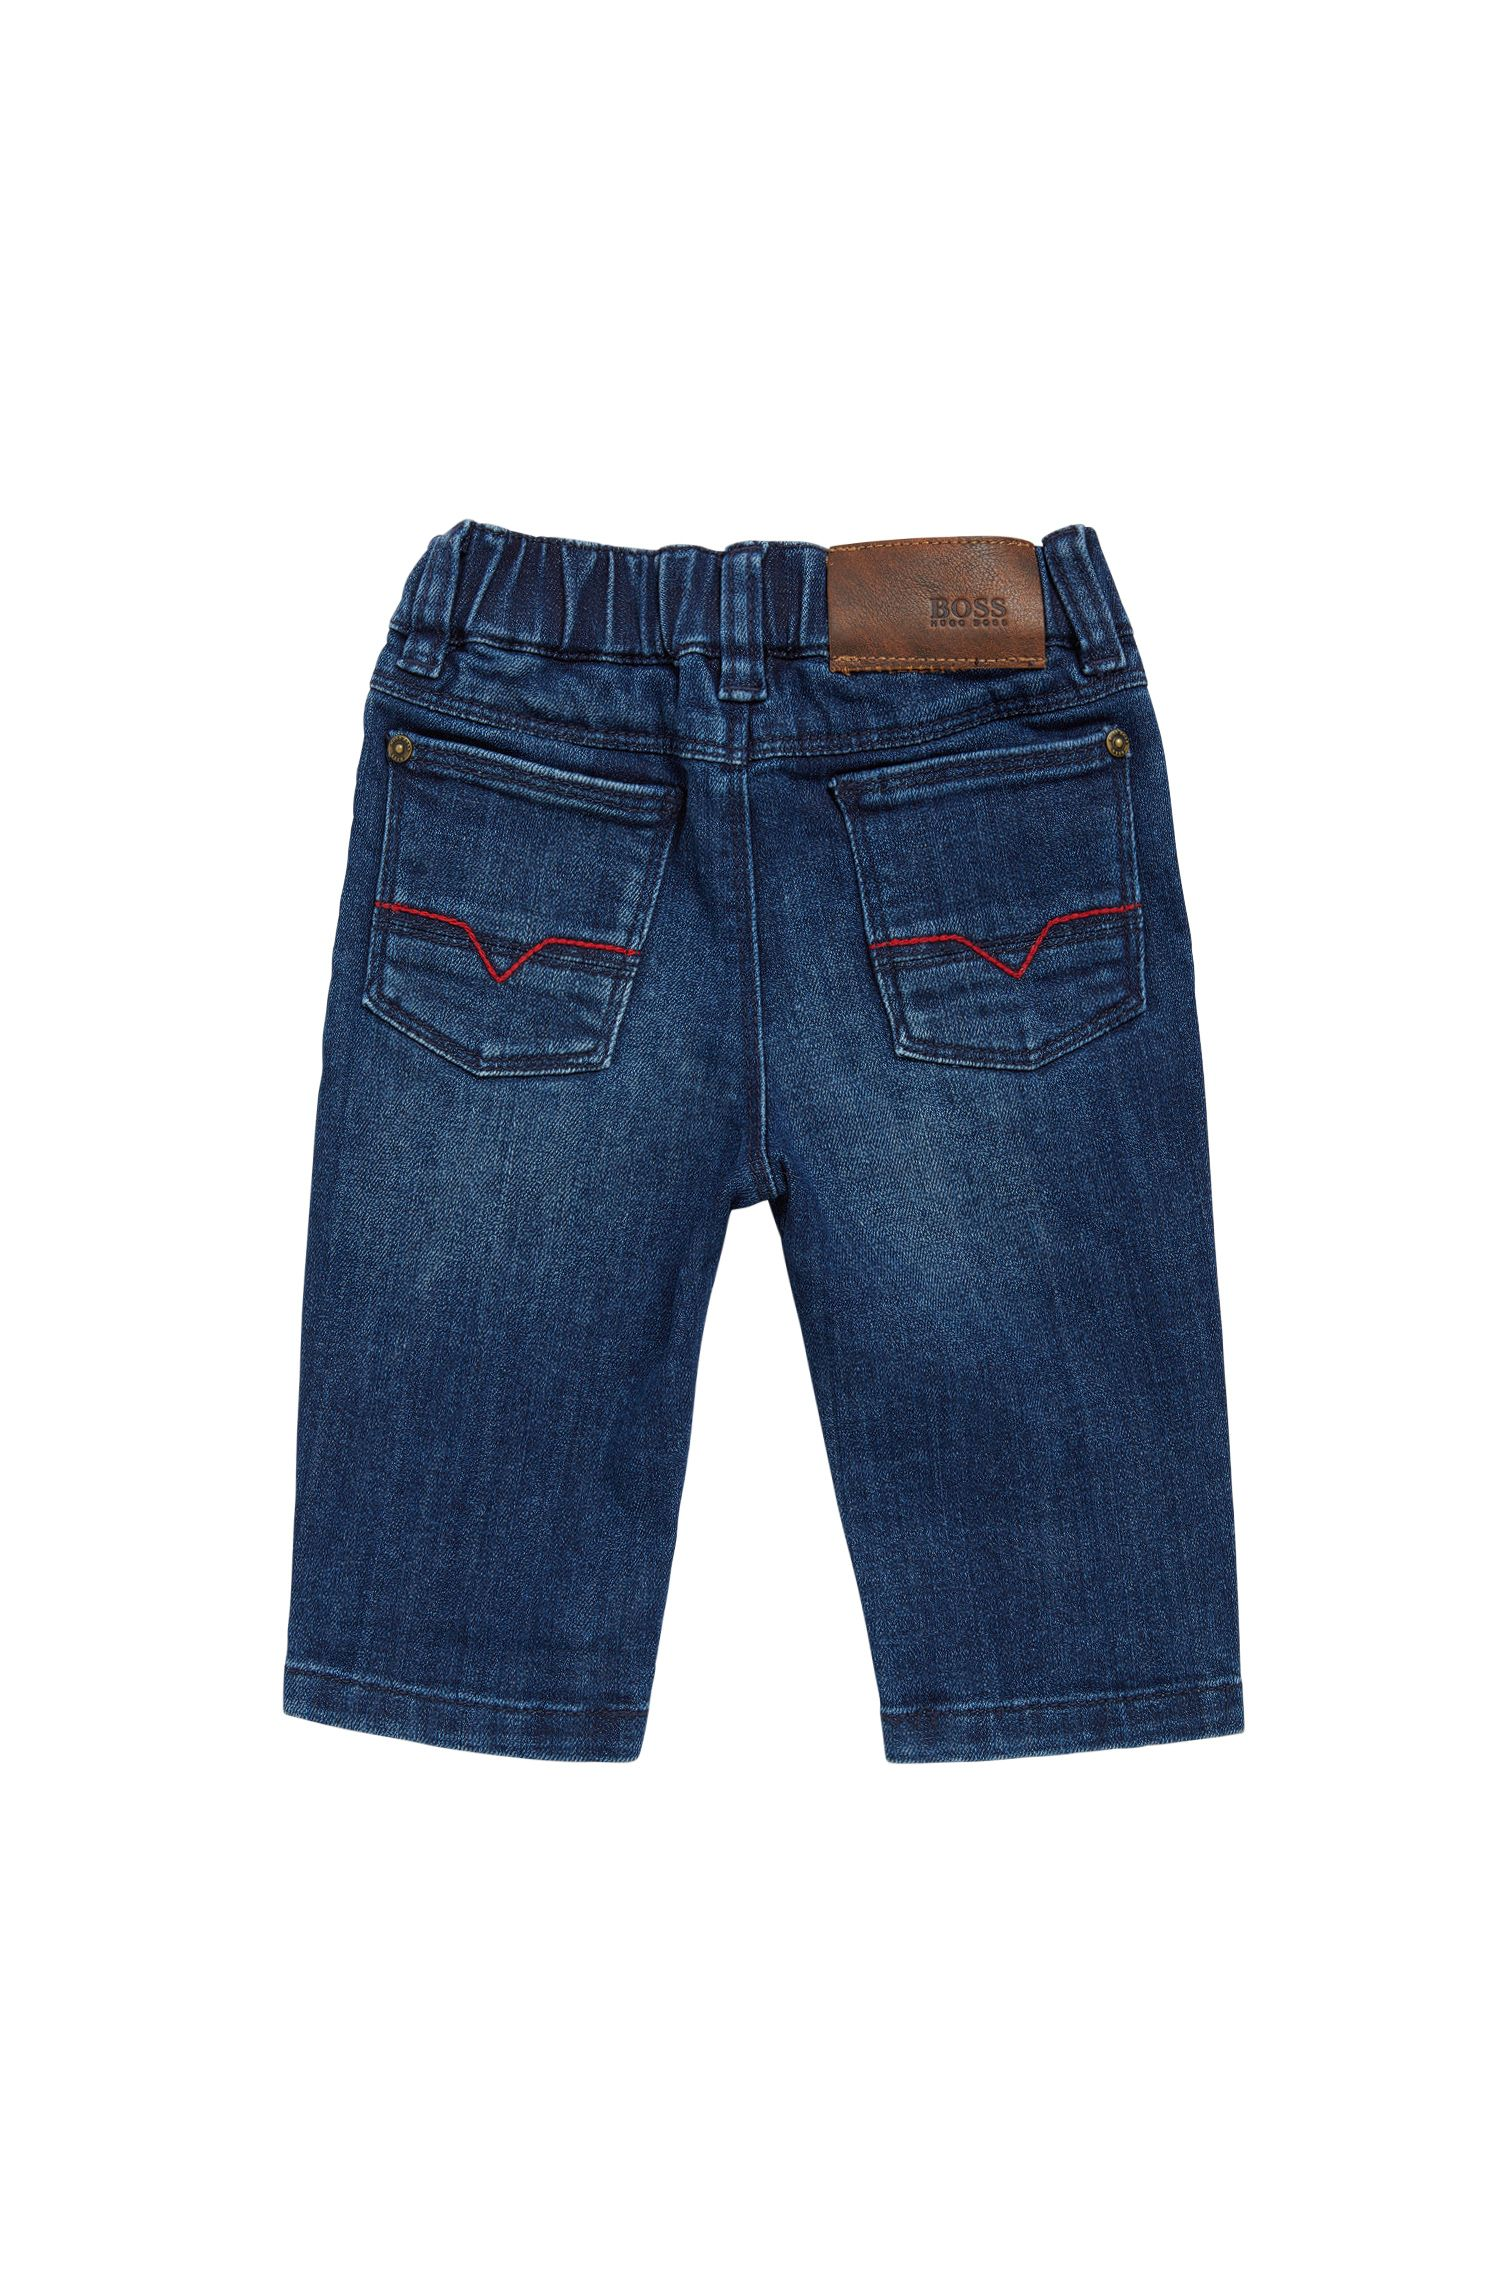 Jeans pour enfant Regular Fit, en coton : « Alabama »